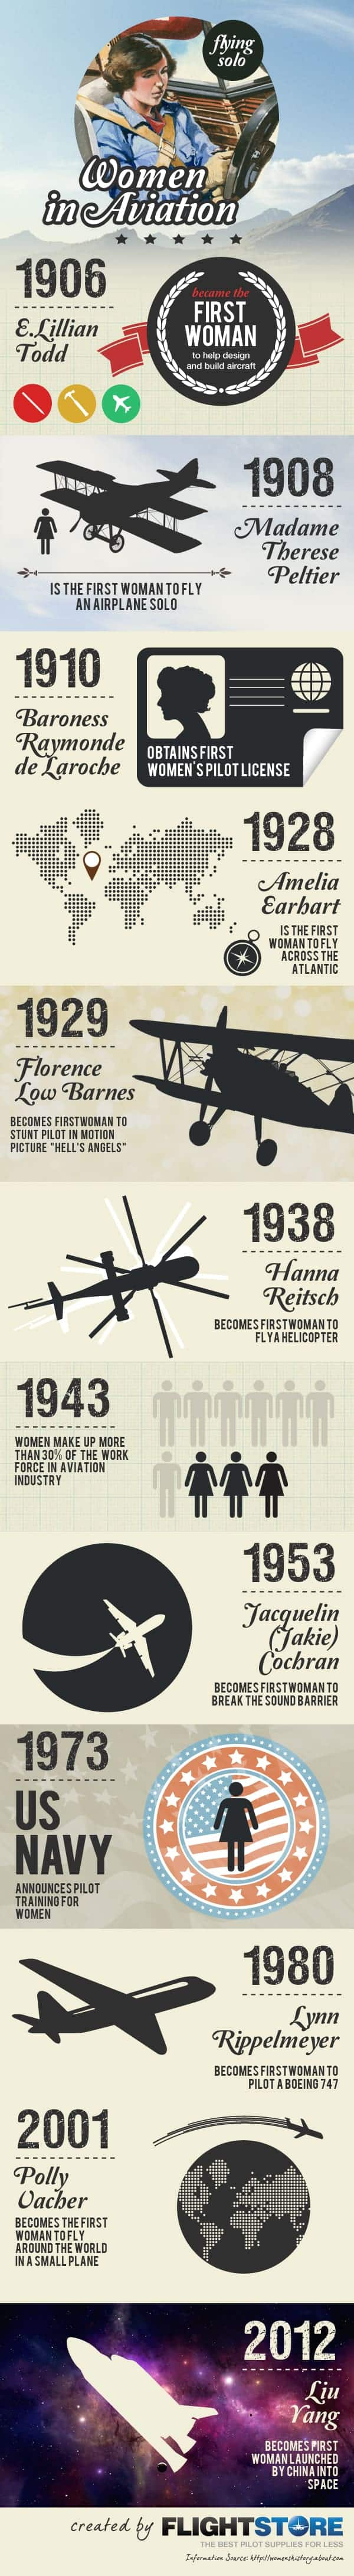 Women in Aviation